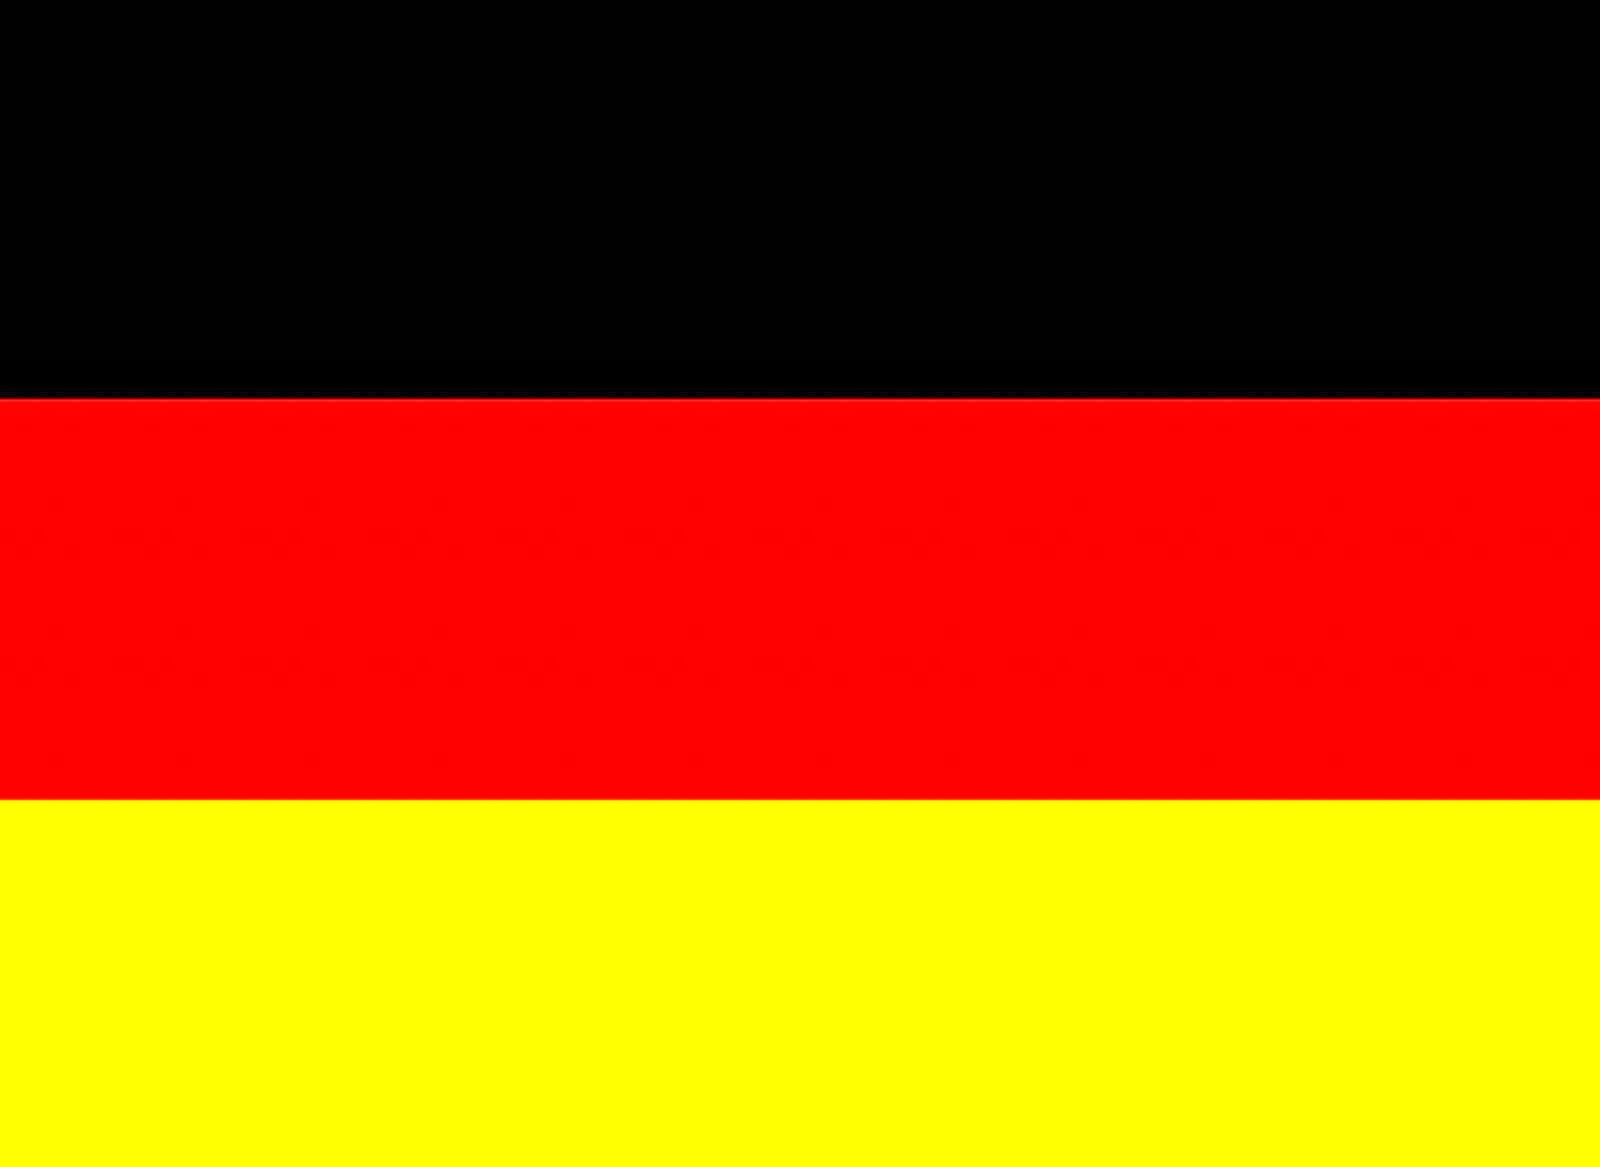 german flag the - photo #26